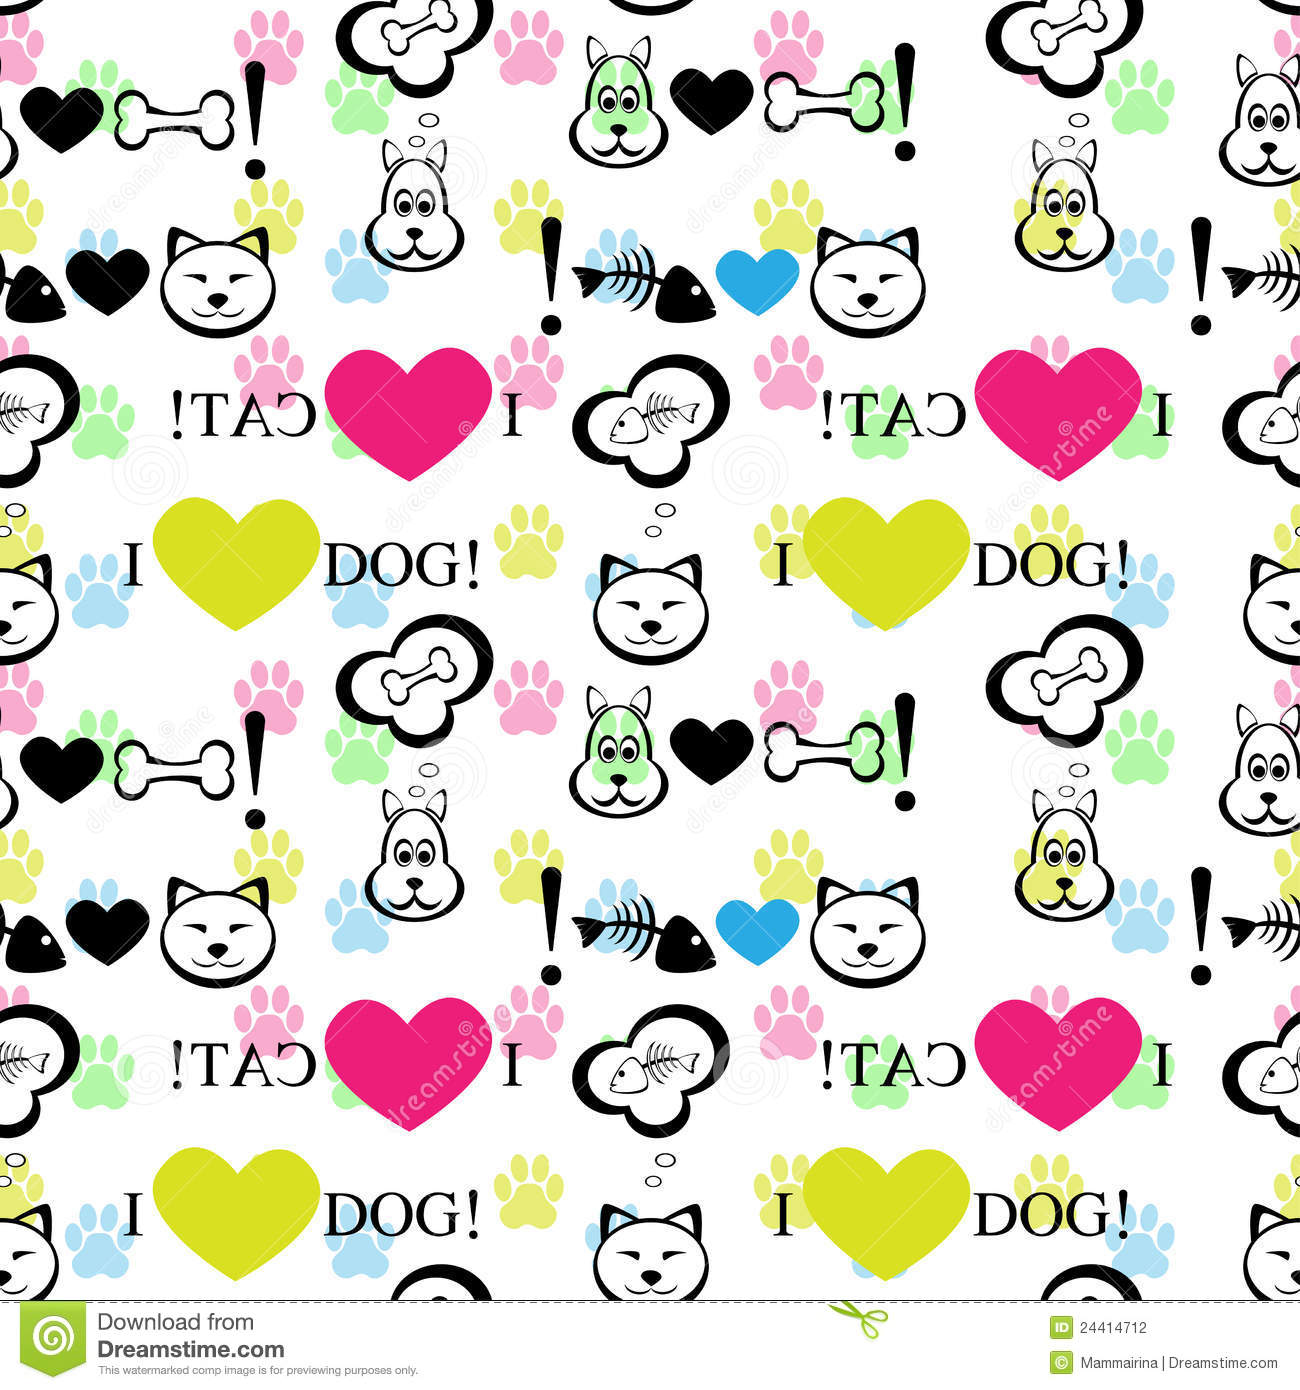 Cute Paw Print Wallpaper Dog And Cat Background Stock Vector Image Of Green